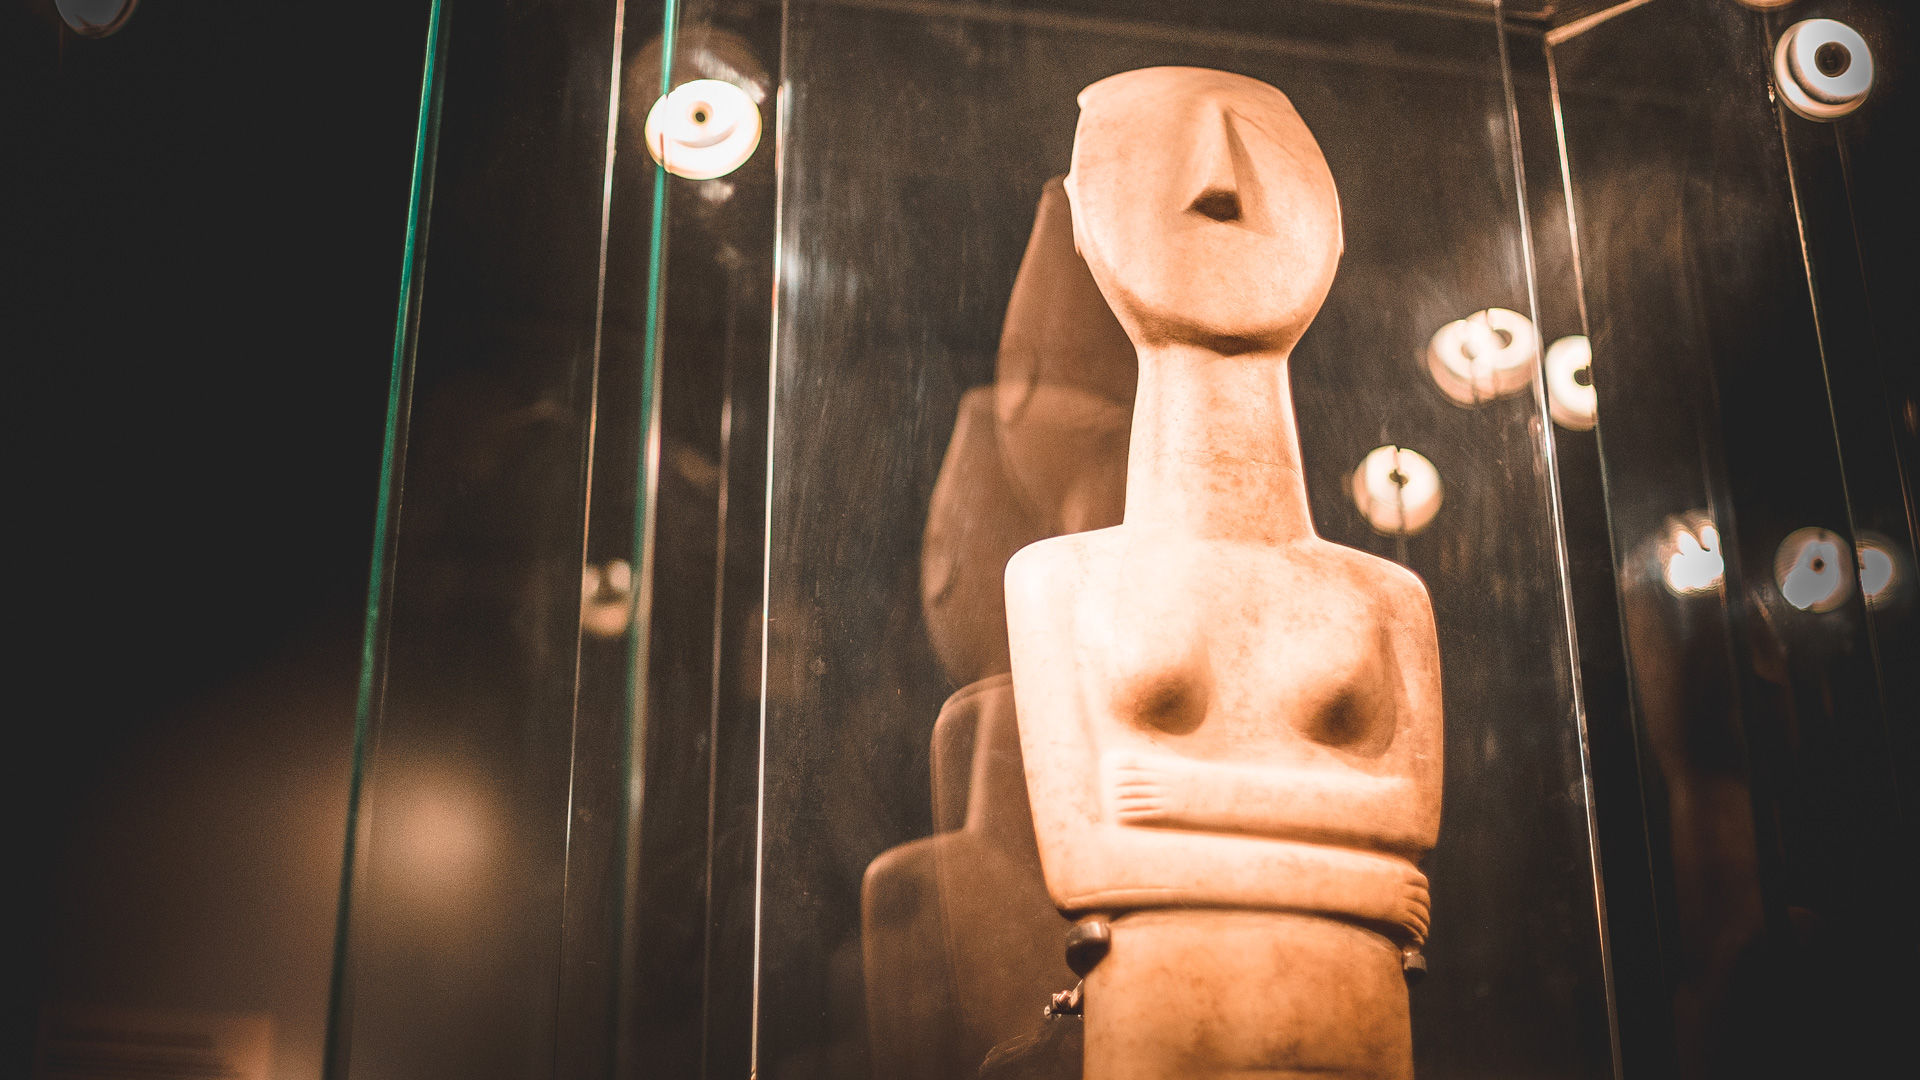 The Early Cycladic Period gave us the famous figurines of men and woman, and sometimes just faces, notable for the beauty of their lines and luminosity of the marble